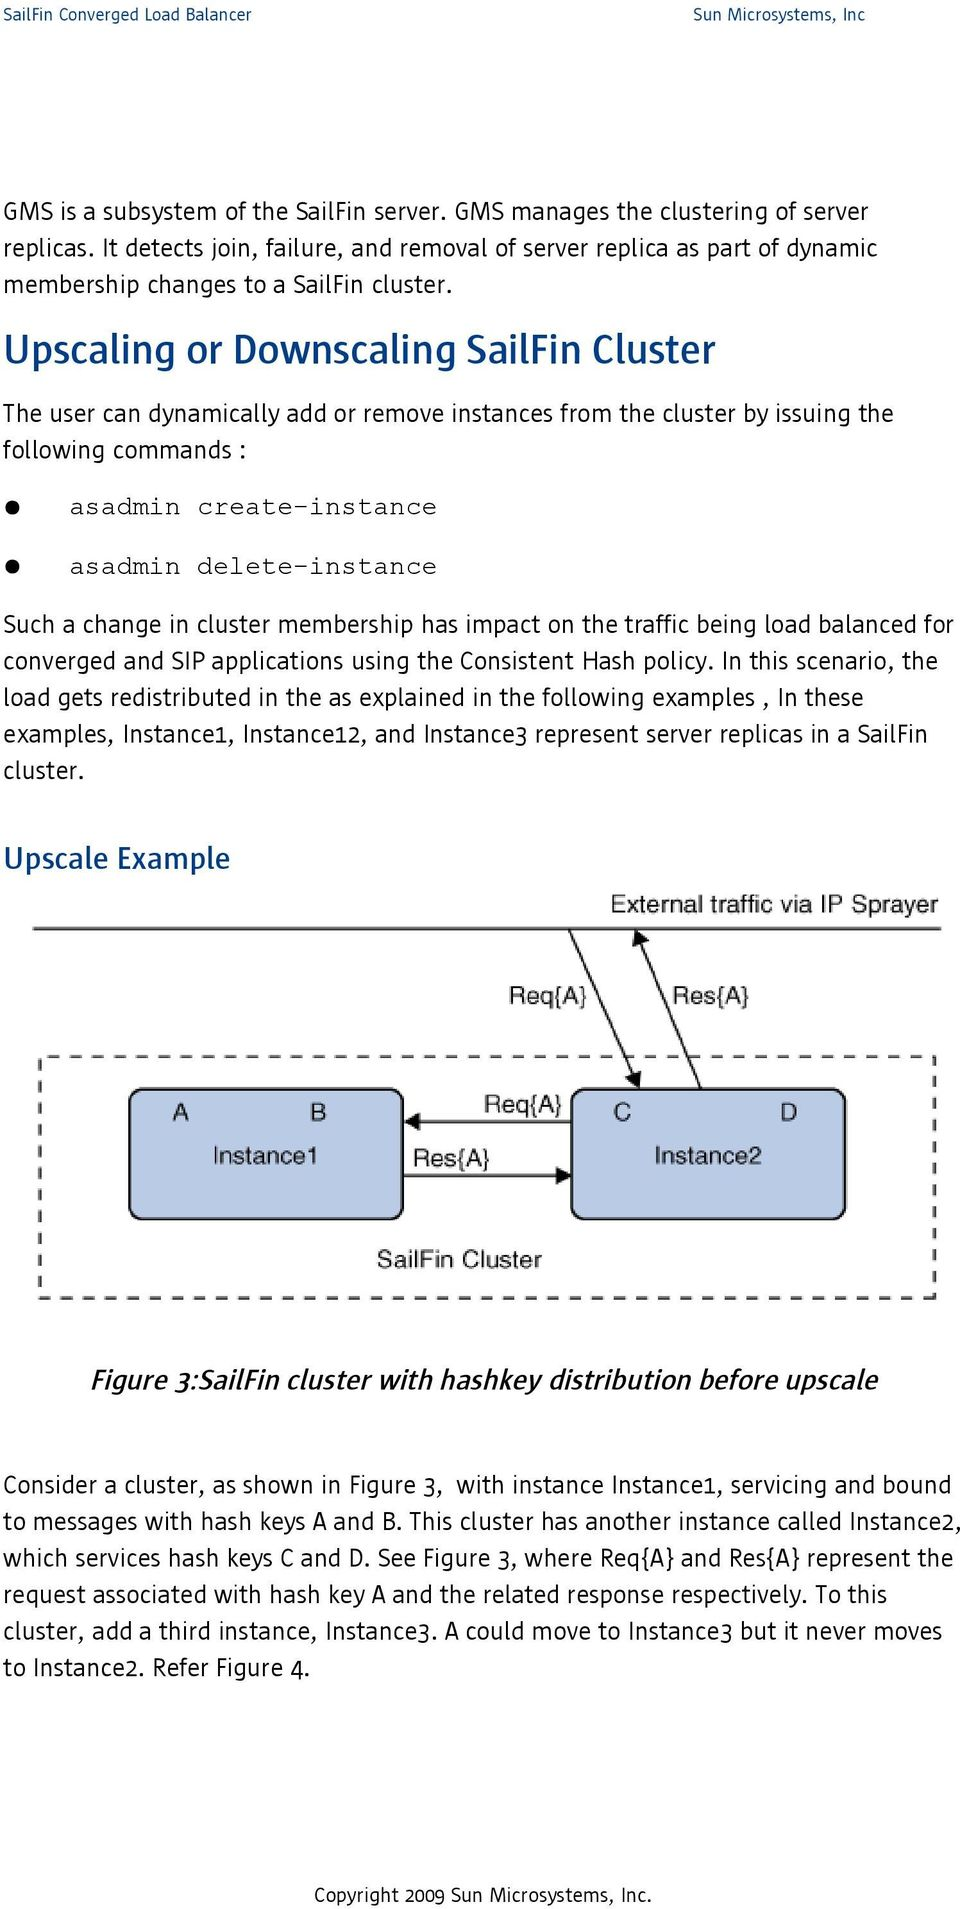 Upscaling or Downscaling SailFin Cluster The user can dynamically add or remove instances from the cluster by issuing the following commands : asadmin create-instance asadmin delete-instance Such a